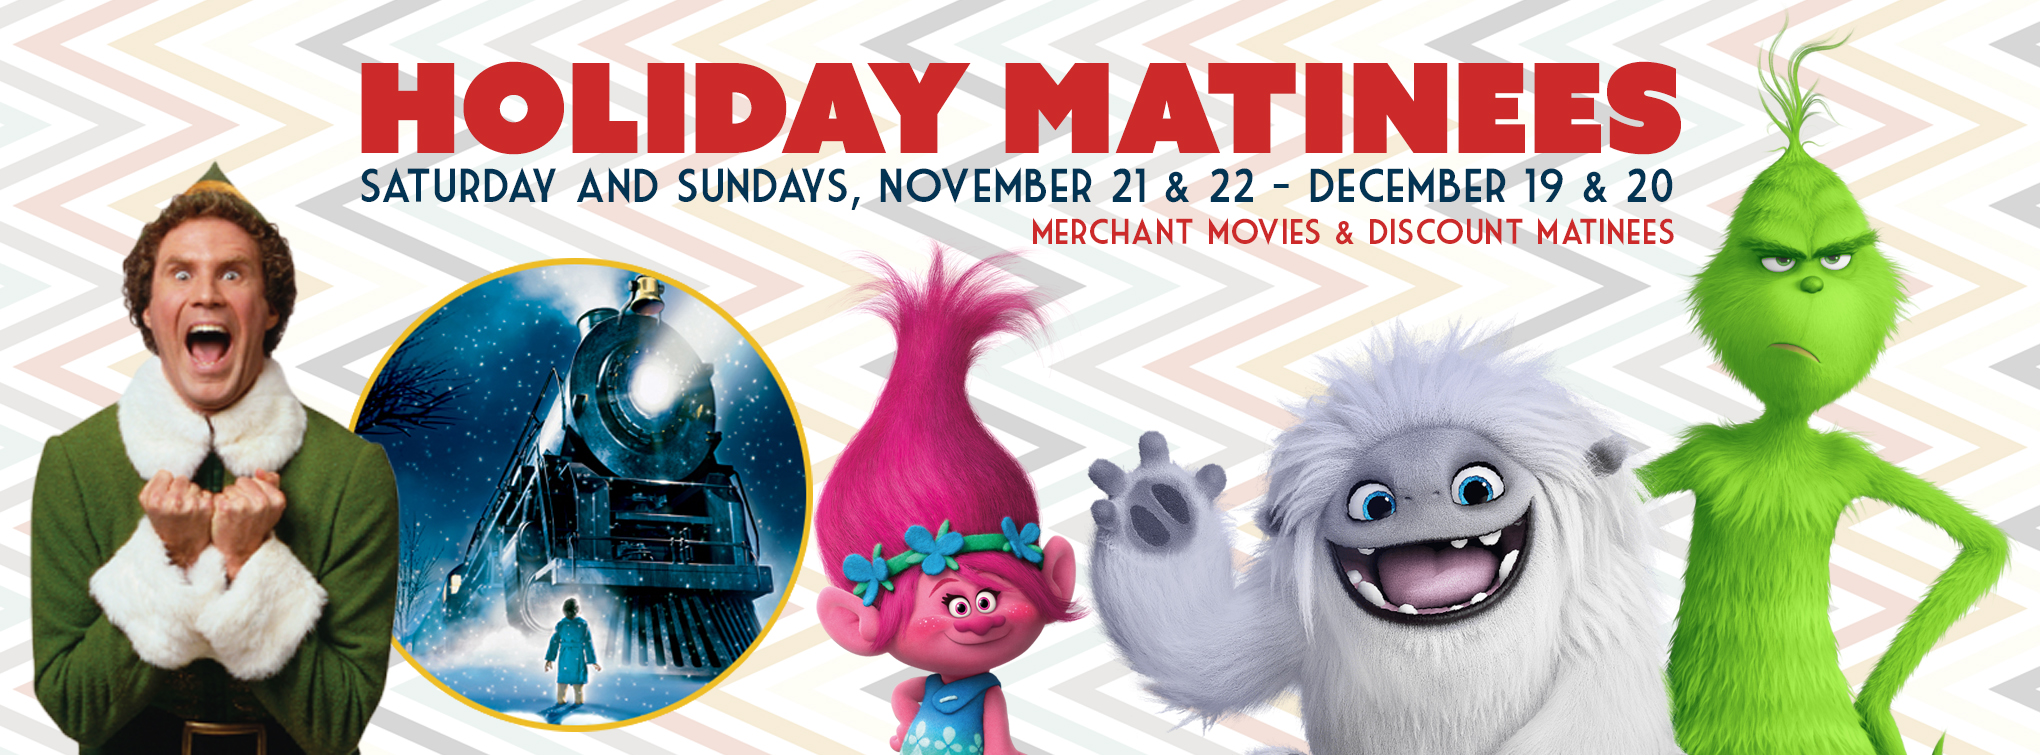 Holiday Matinees - click here for more info